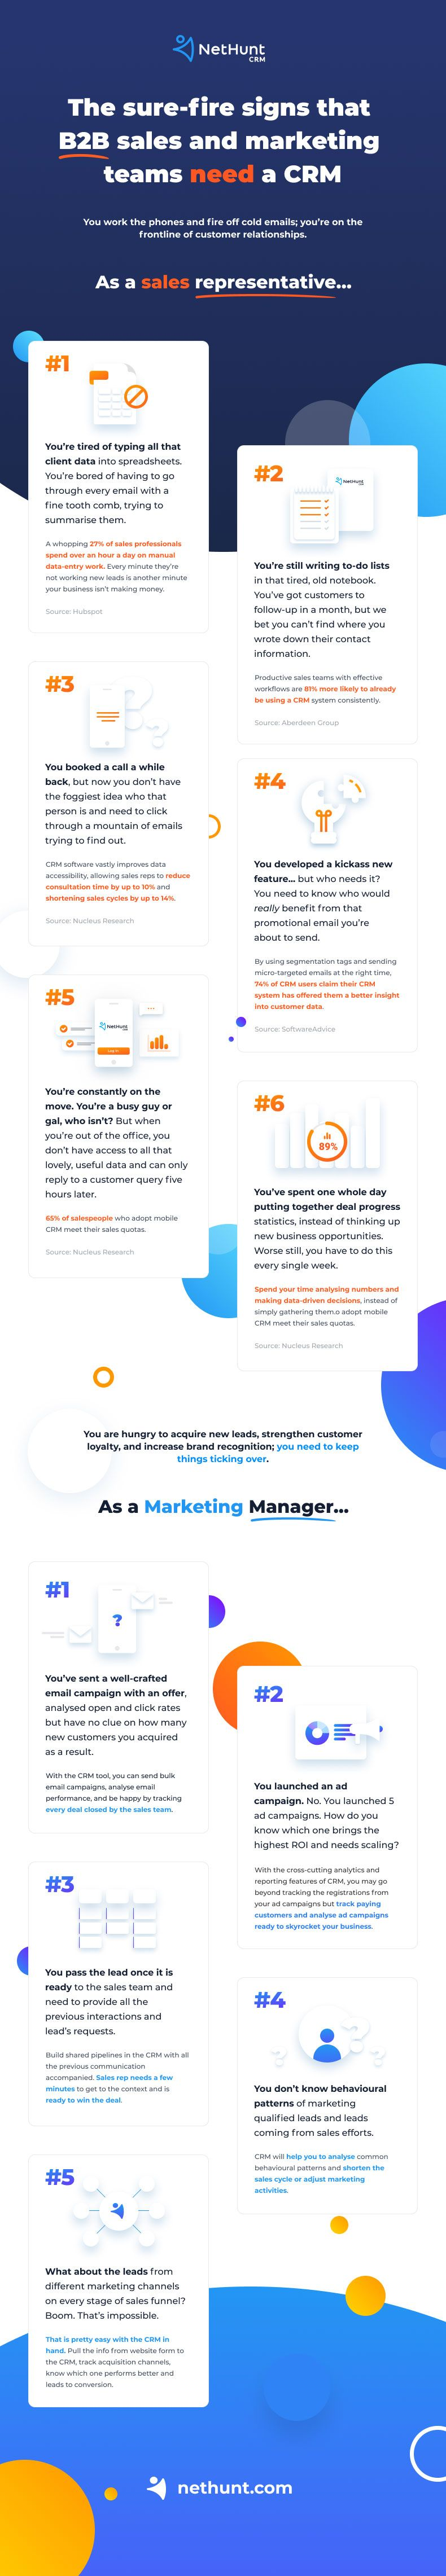 200922 infographic nethunt crm scaled